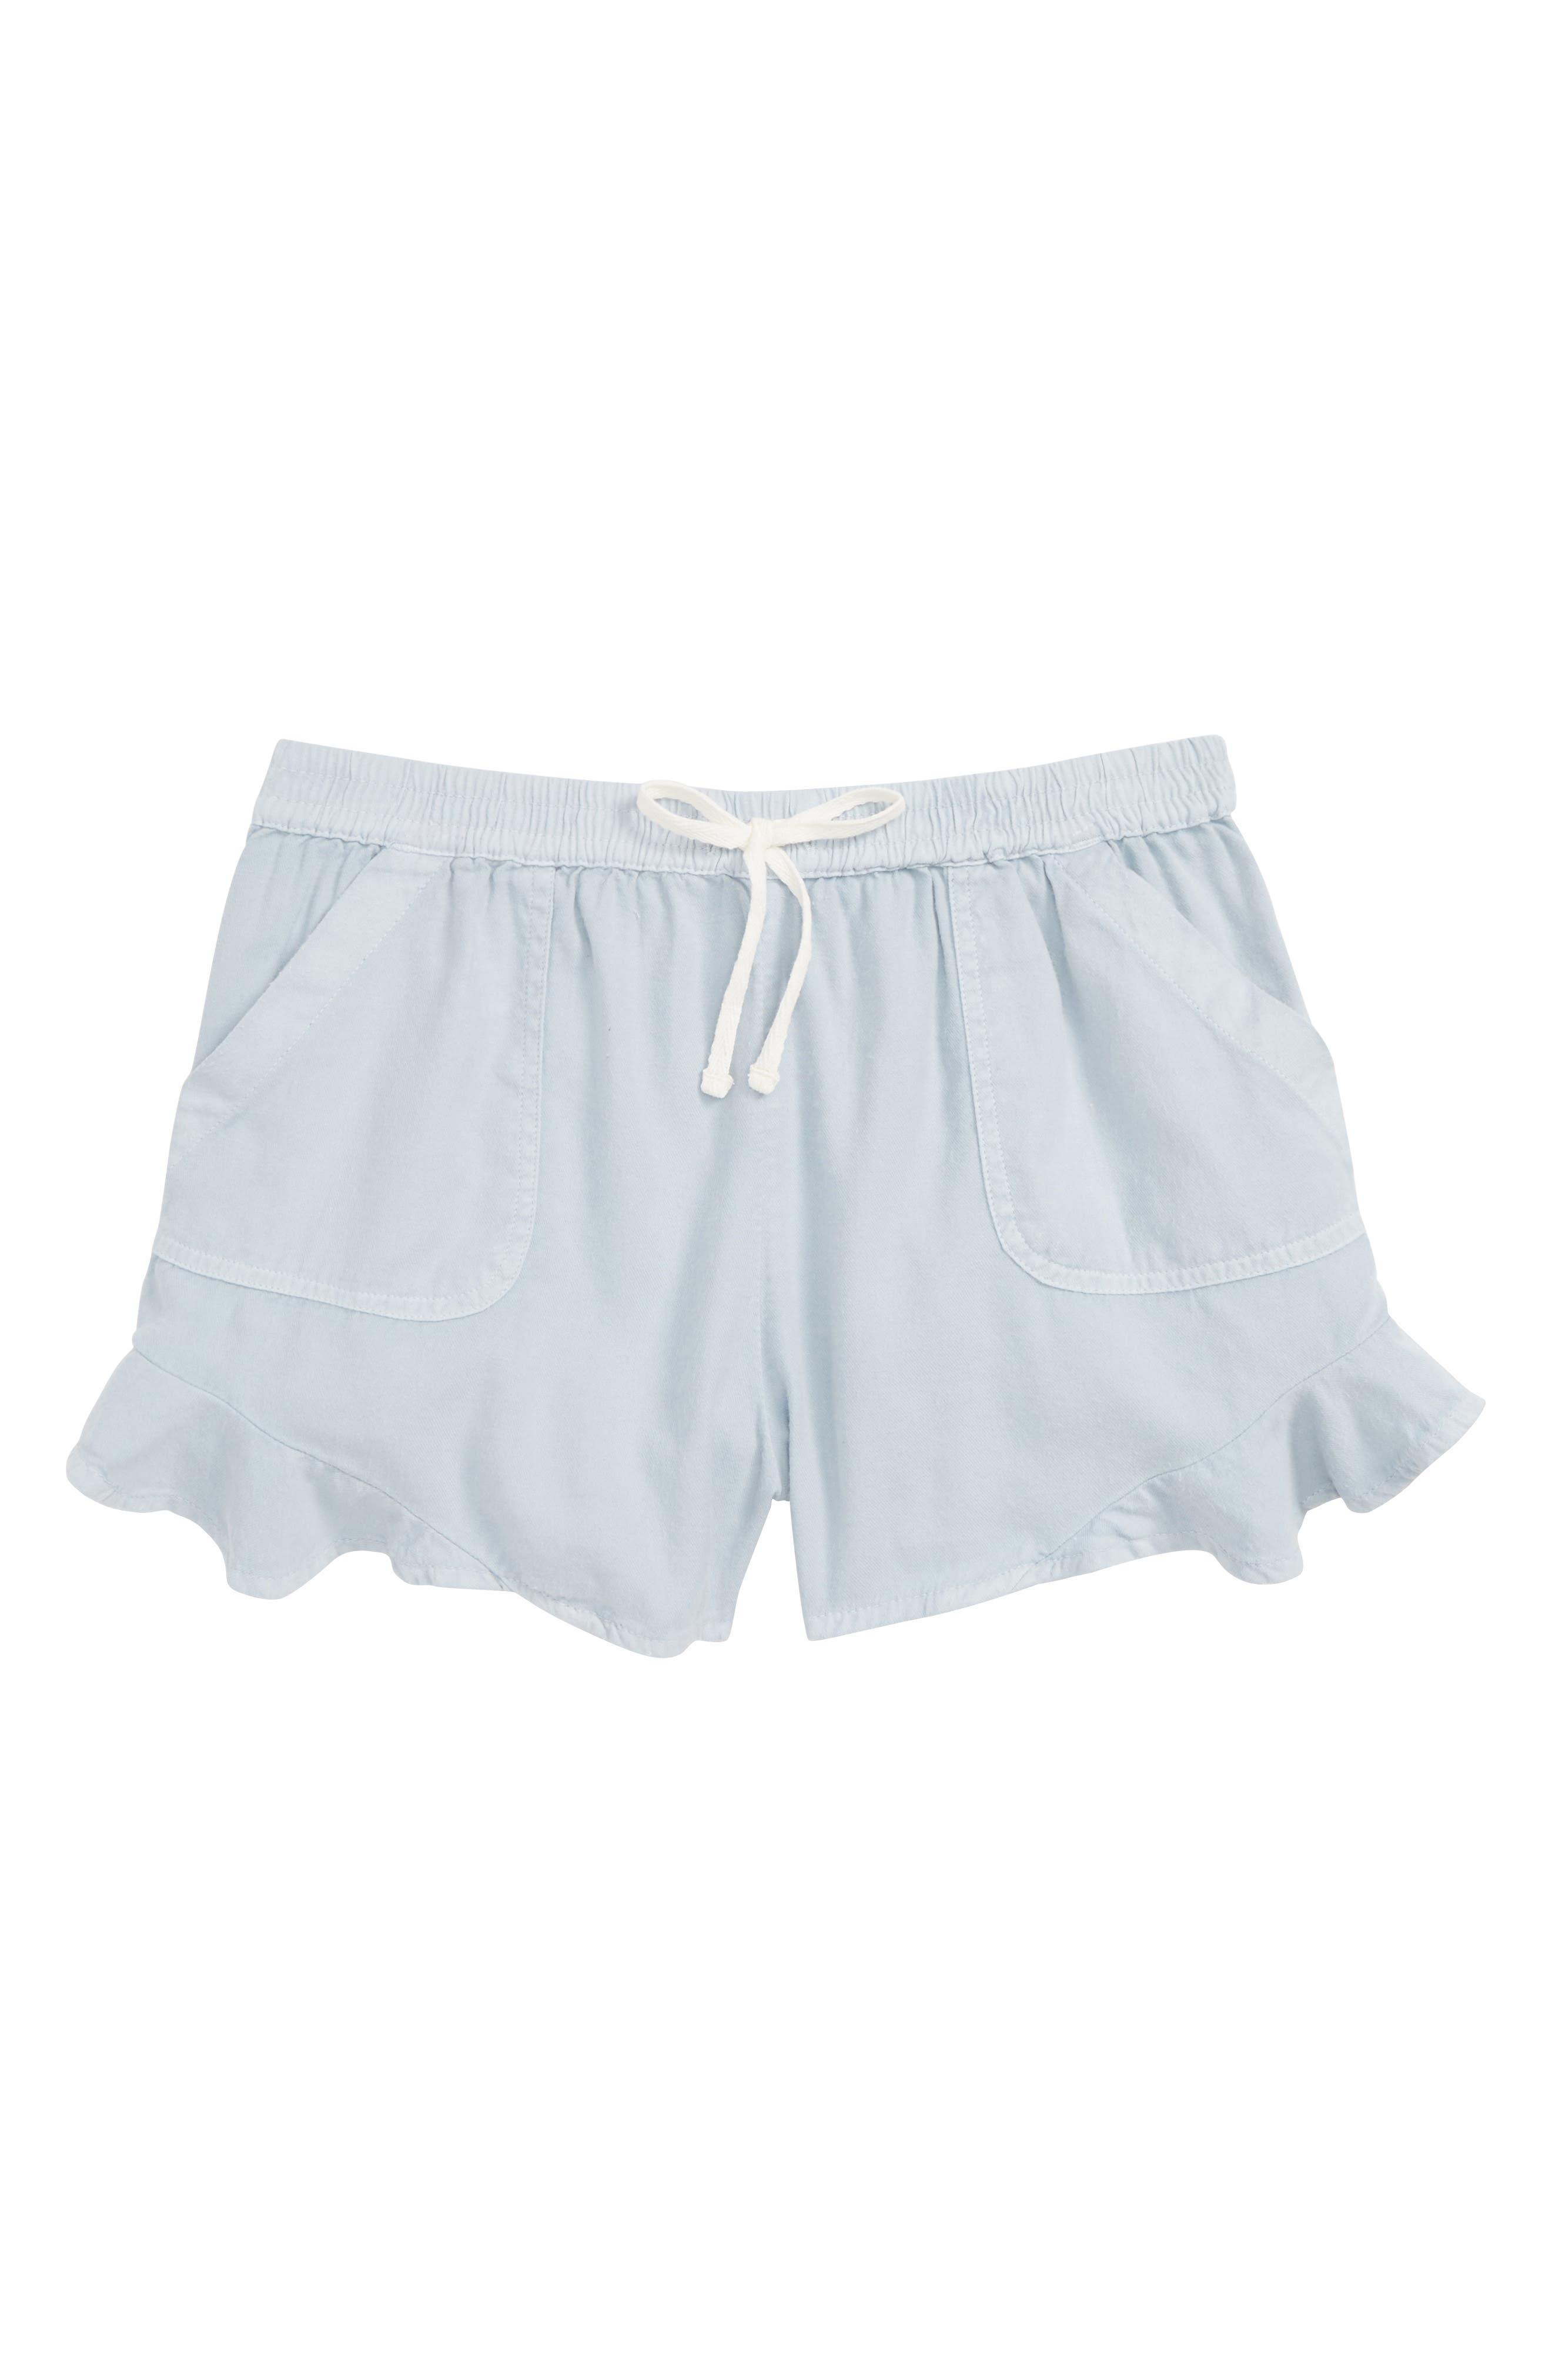 Mad For Summer Shorts,                         Main,                         color, CHAMBRAY